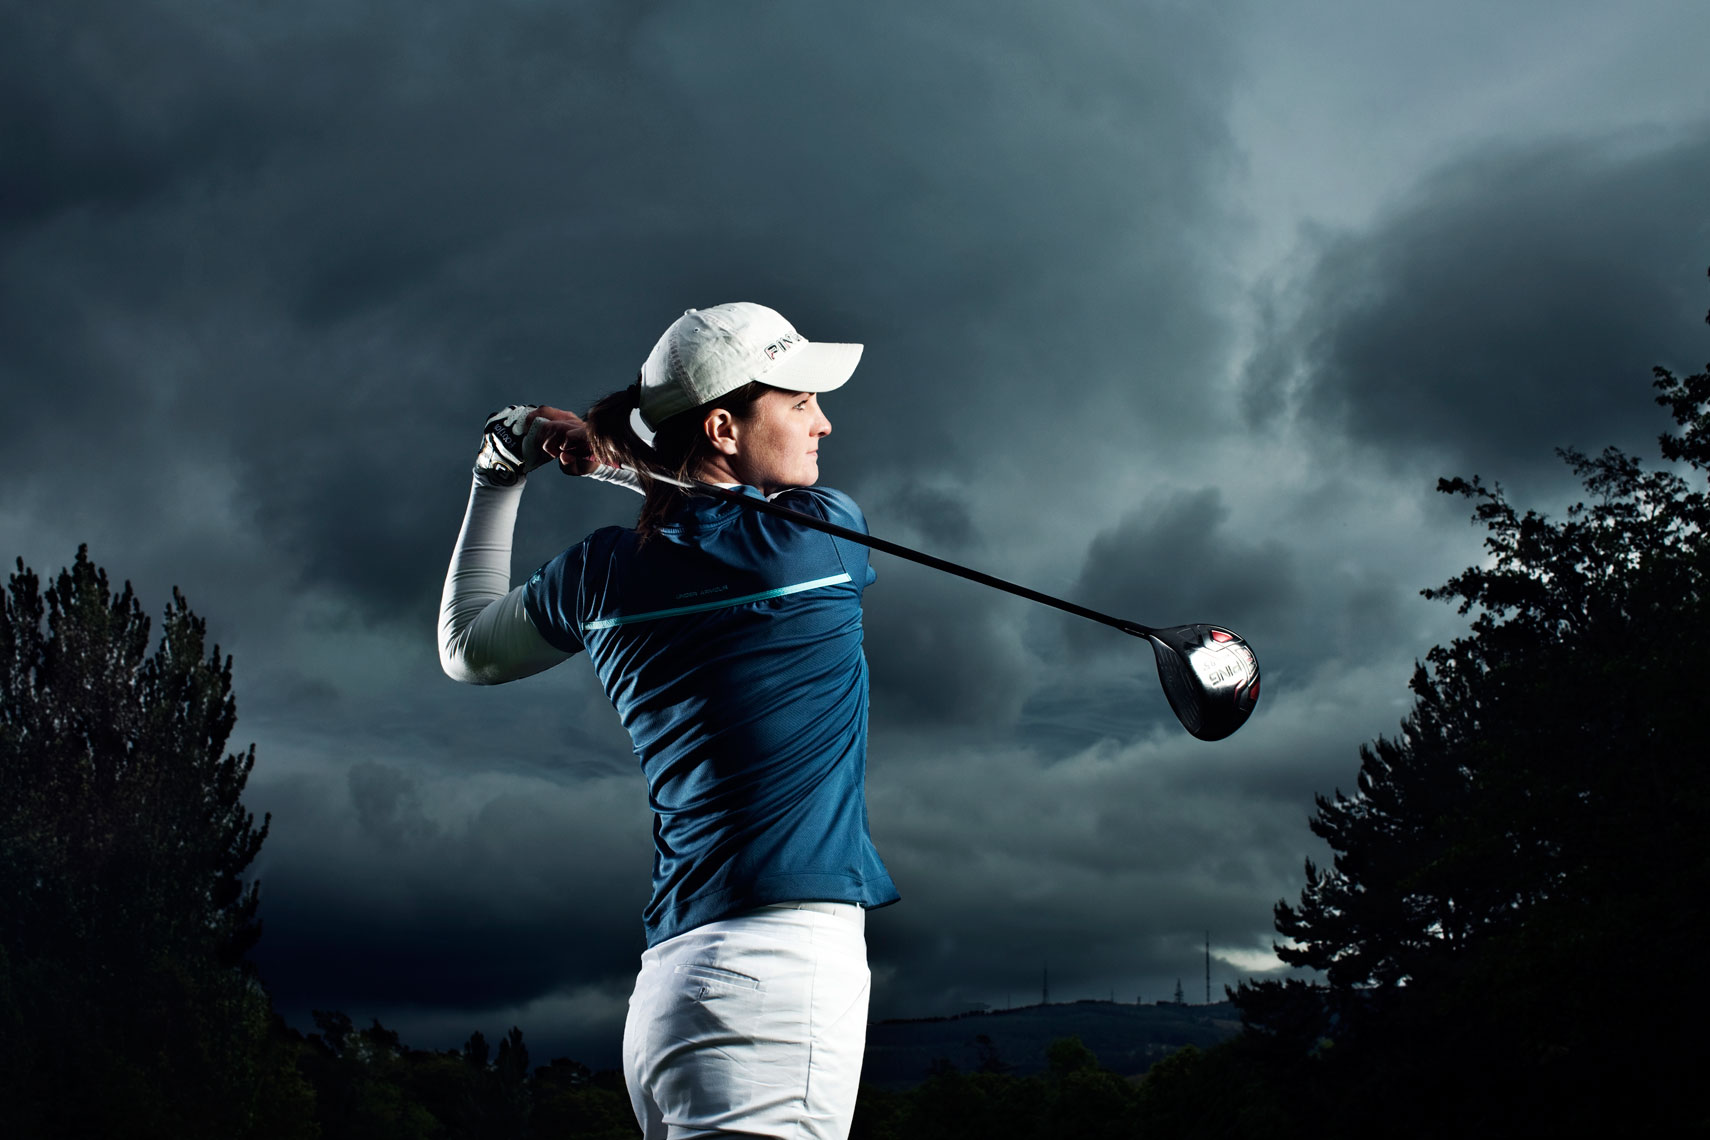 athlete portraits: danielle mcveigh golfer midswing